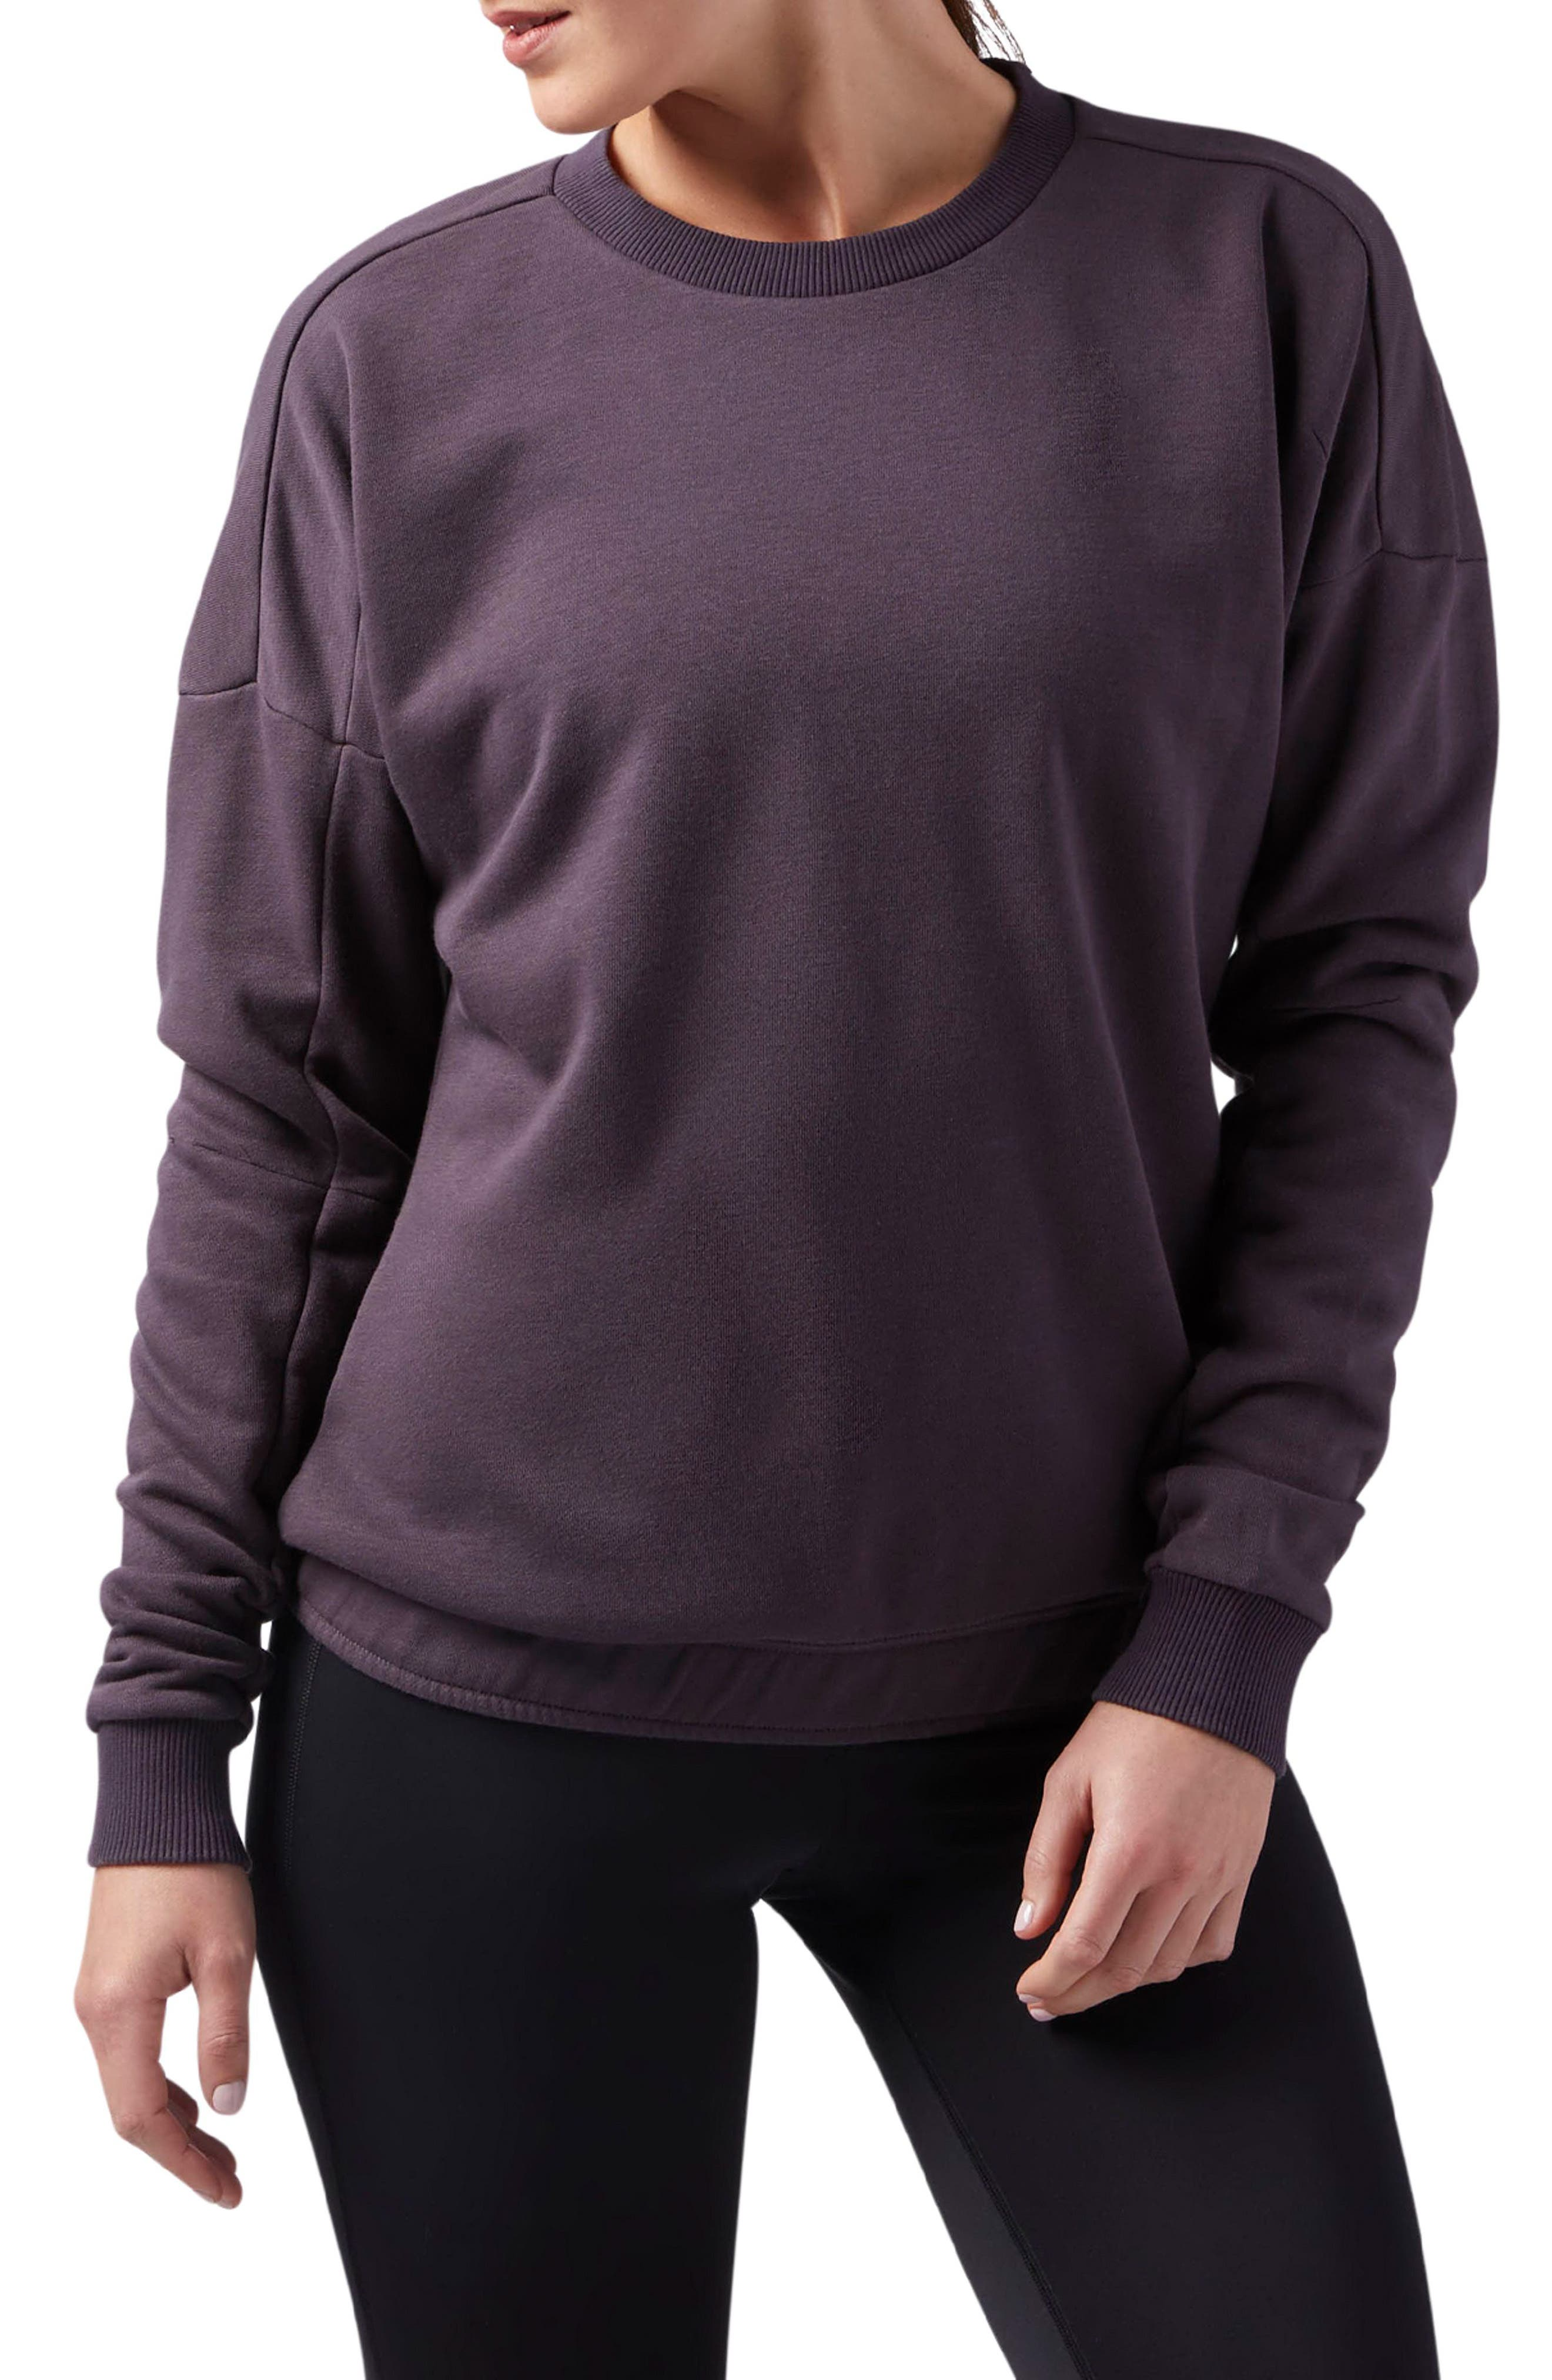 Elements Washed Sweatshirt,                         Main,                         color, Smoky Volcano S18-R